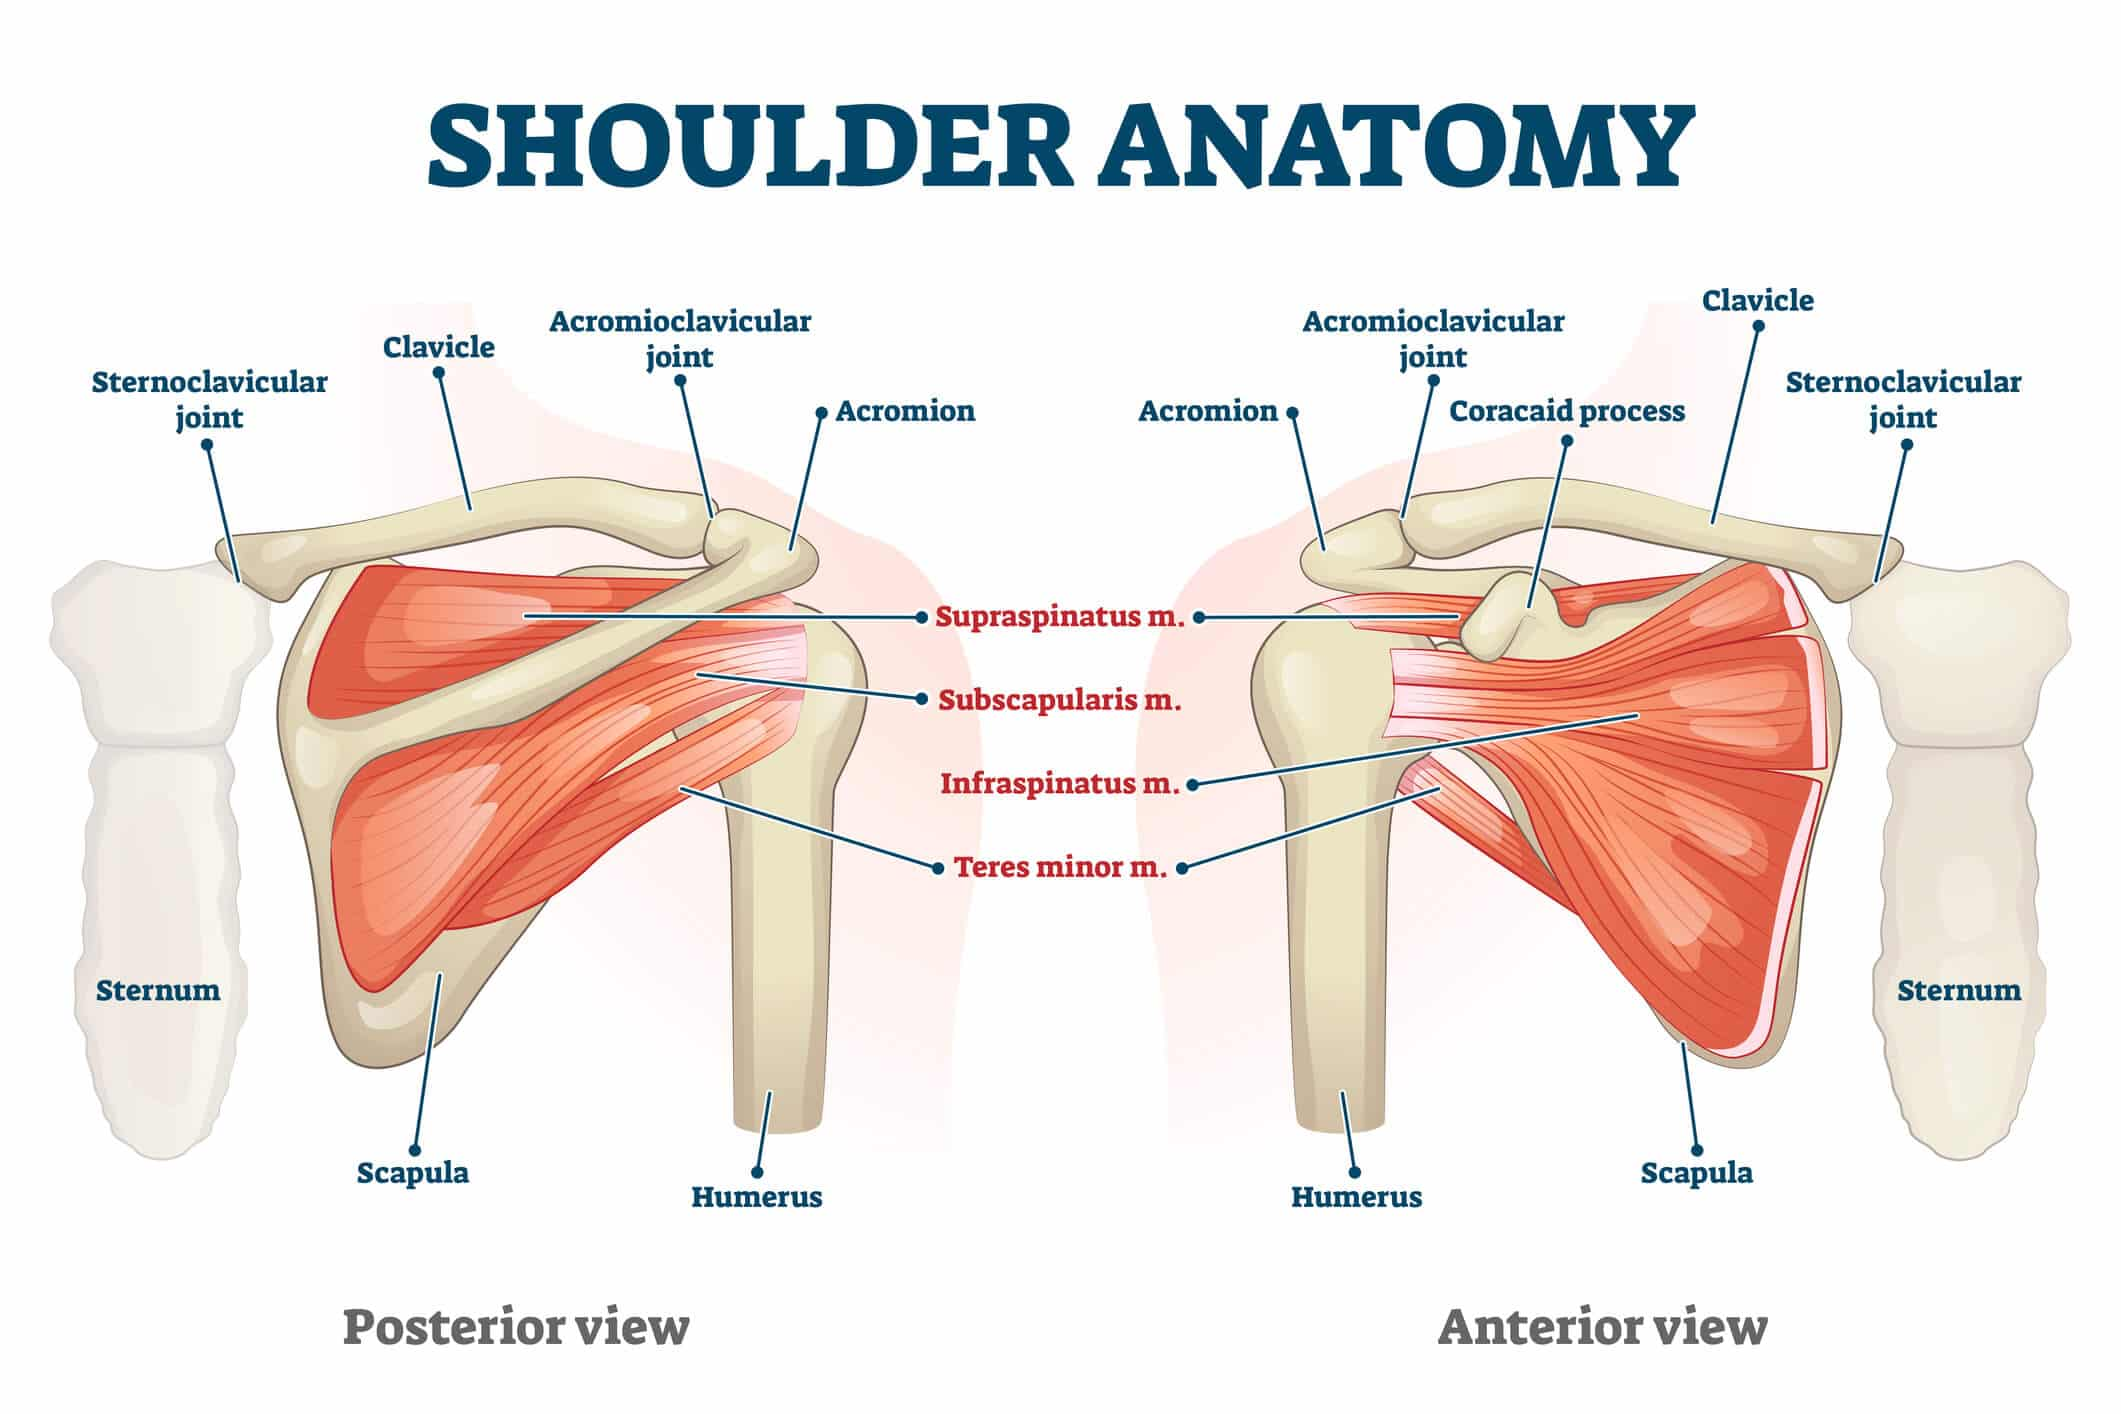 Medical Image of the anatomy of the shoulder